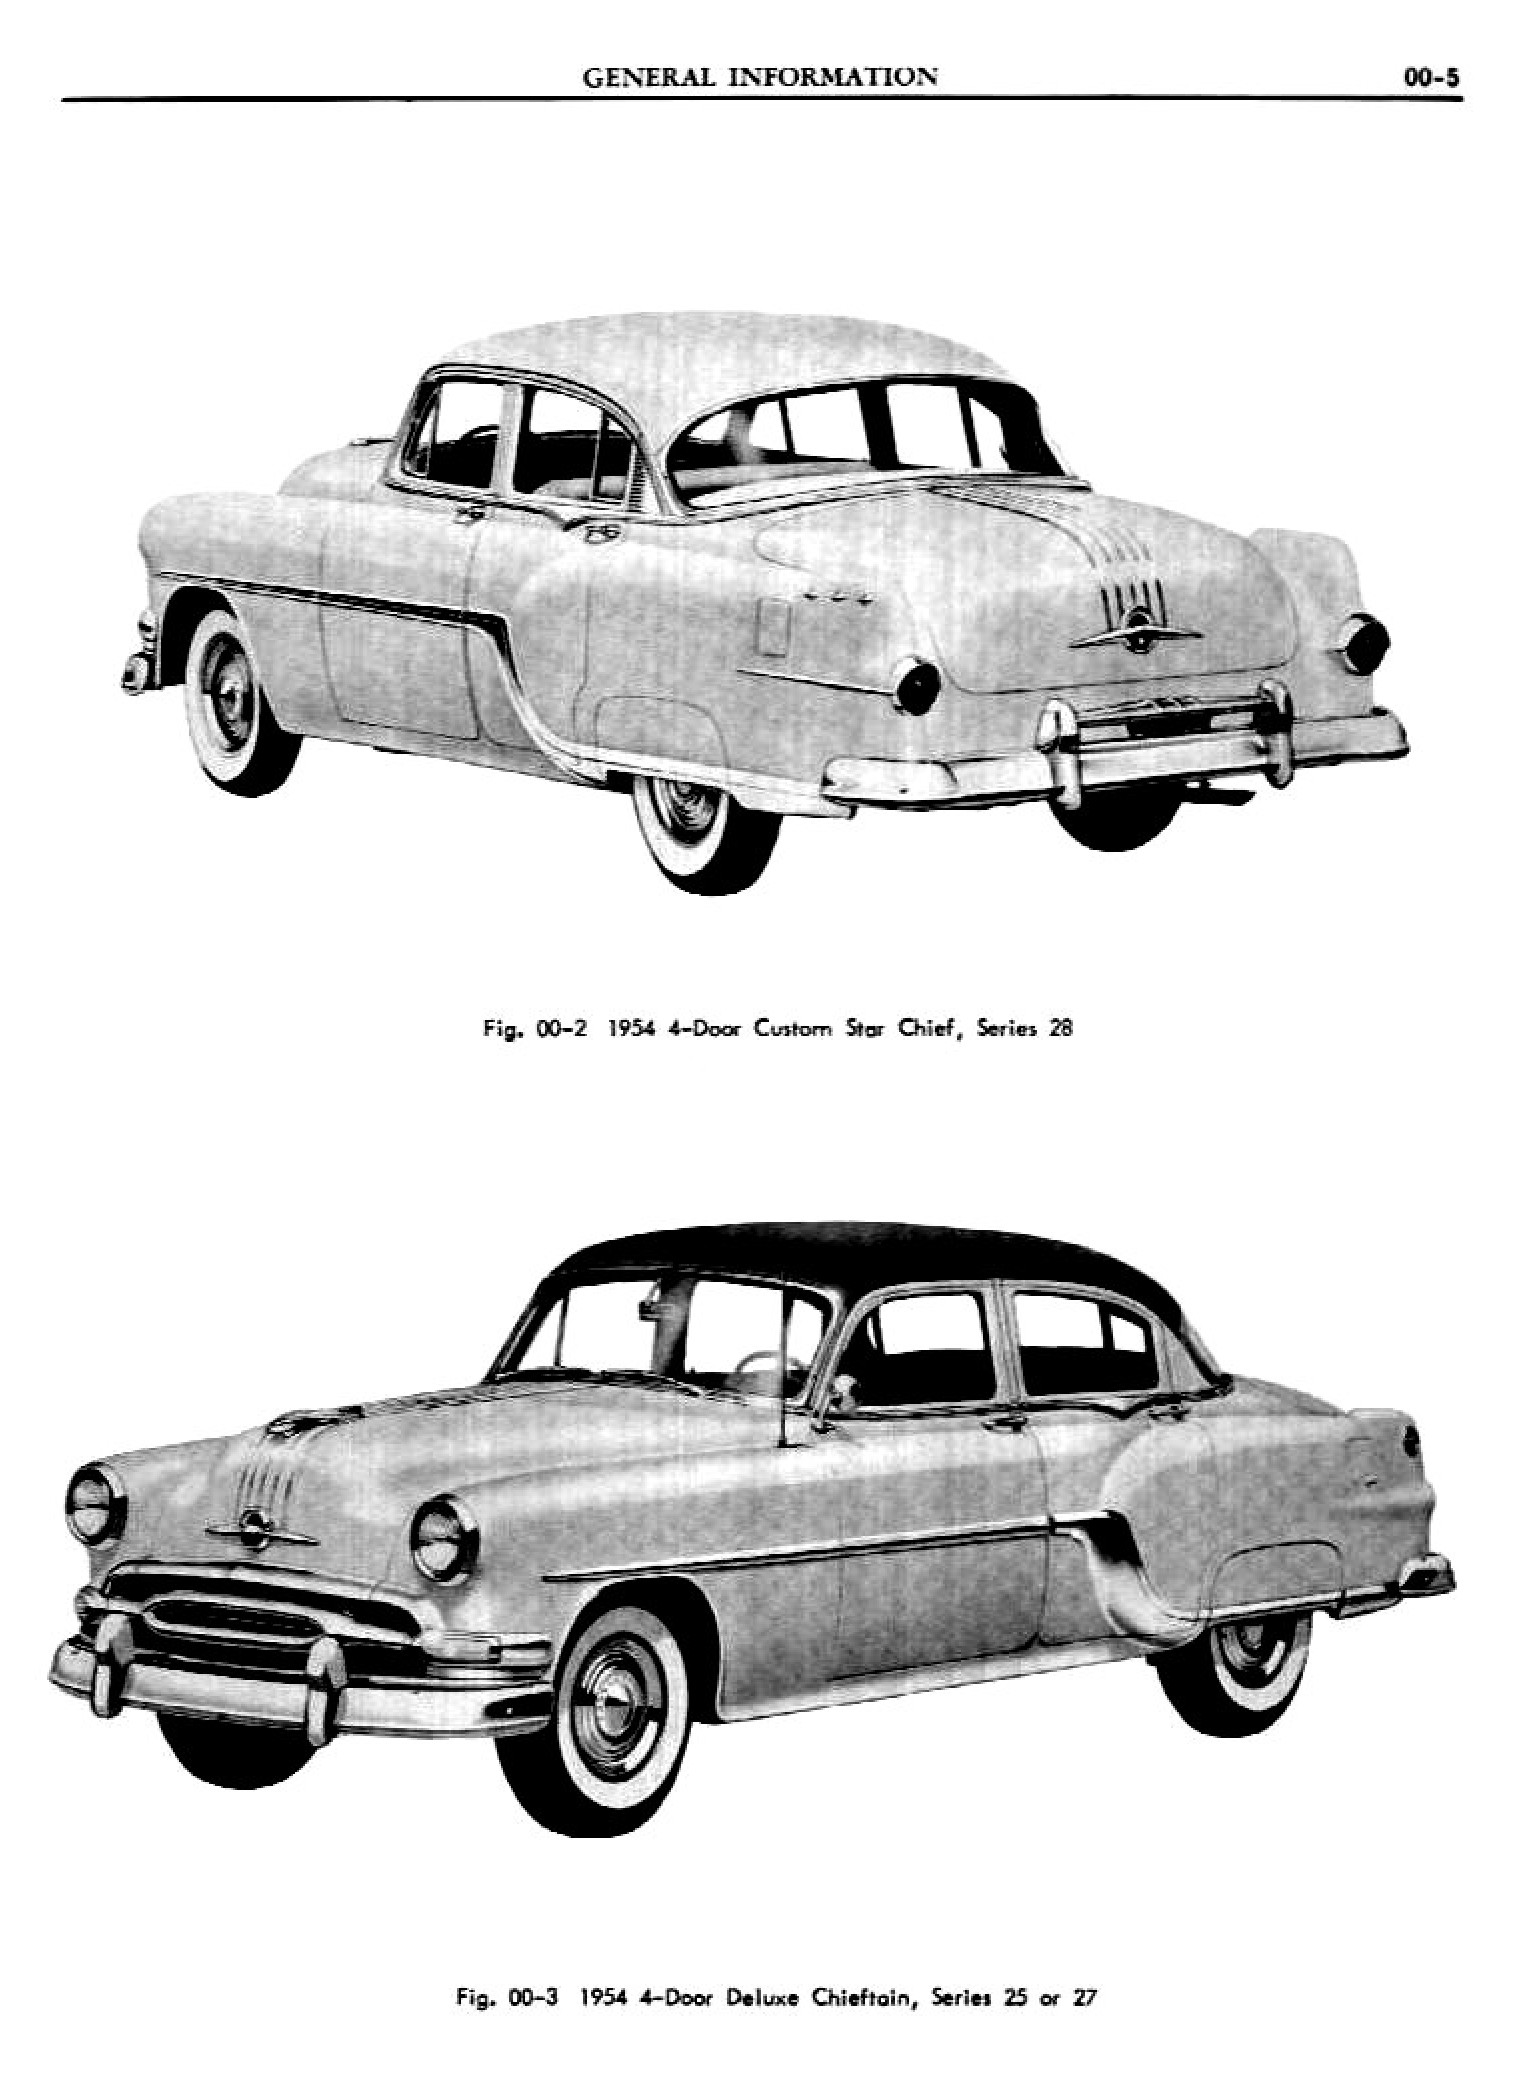 1949 Pontiac Shop Manual- Gen Information Page 5 of 16